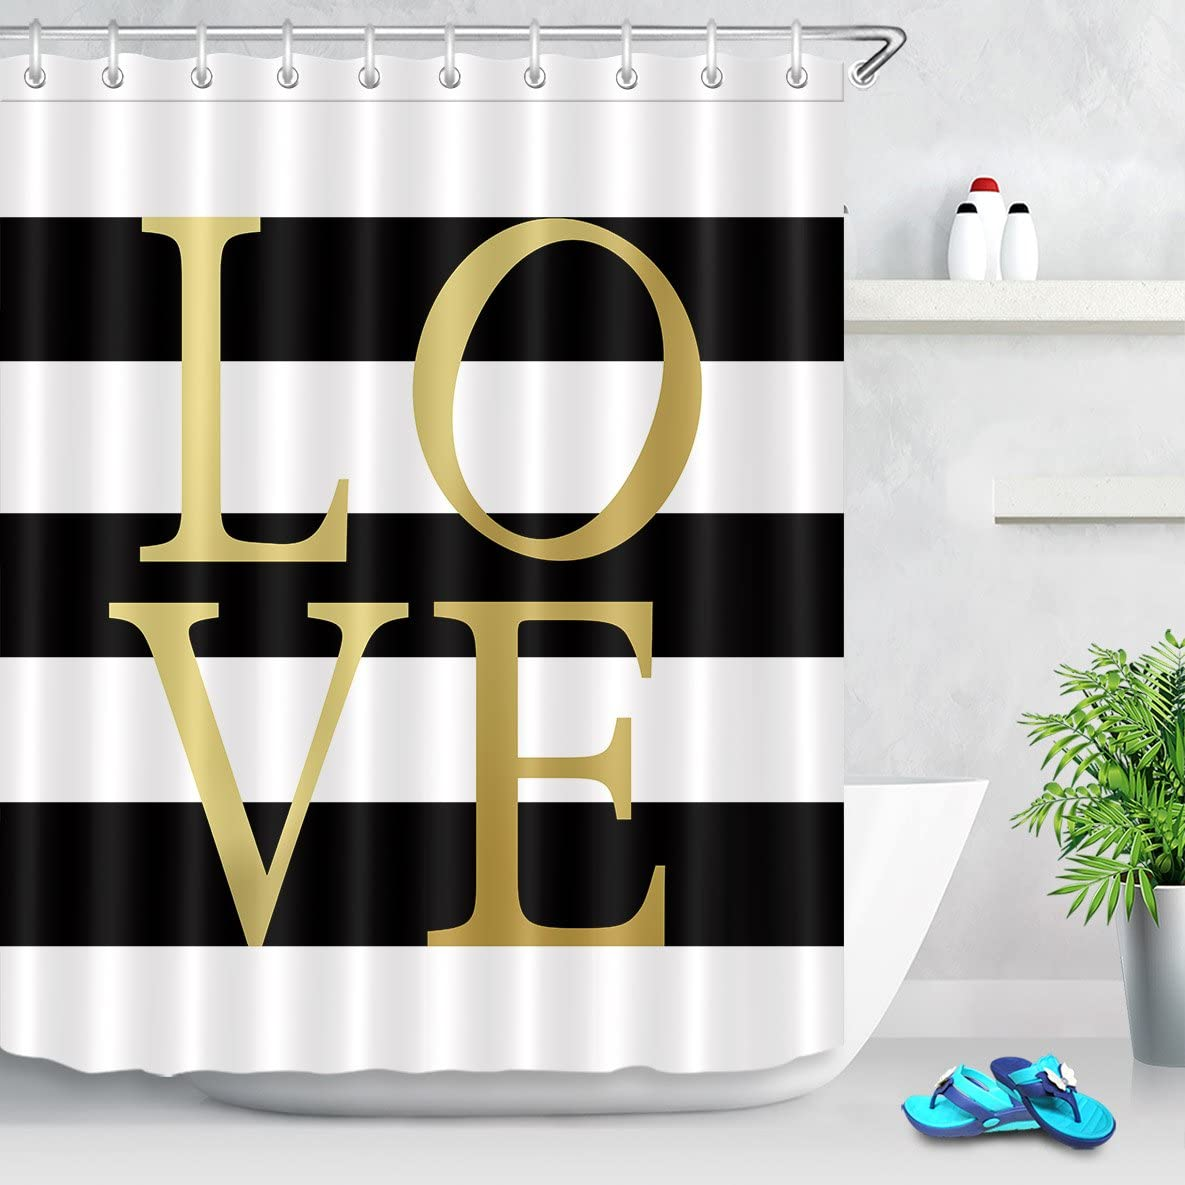 LB Classic Design Black and White Striped Shower Curtain with Gold Love Simple Bathroom Decor Waterproof Polyester Fabric 72x72 Inch with 12 Hooks